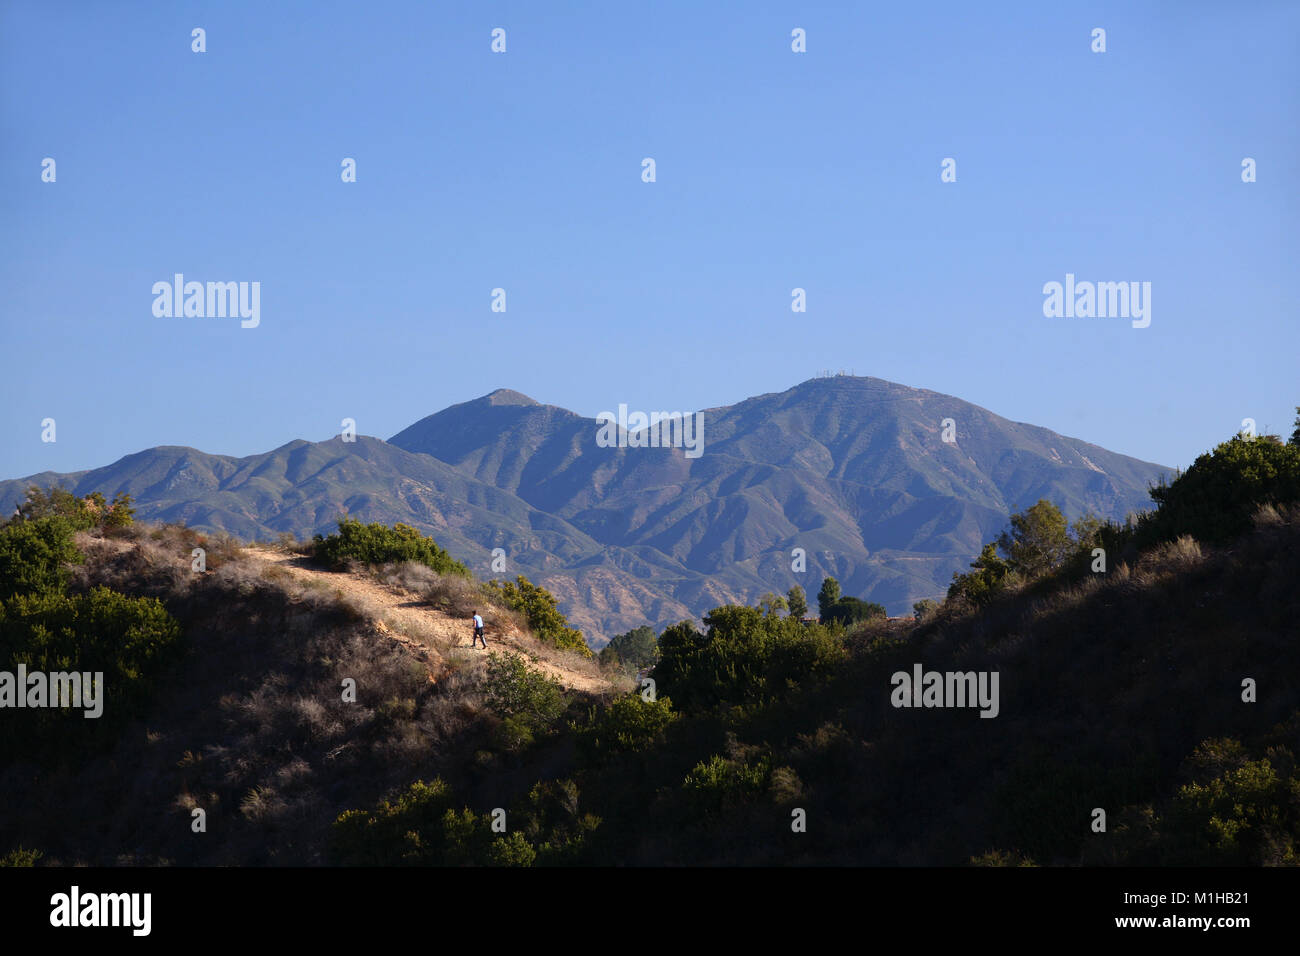 dilley stock  dilley stock images alamy